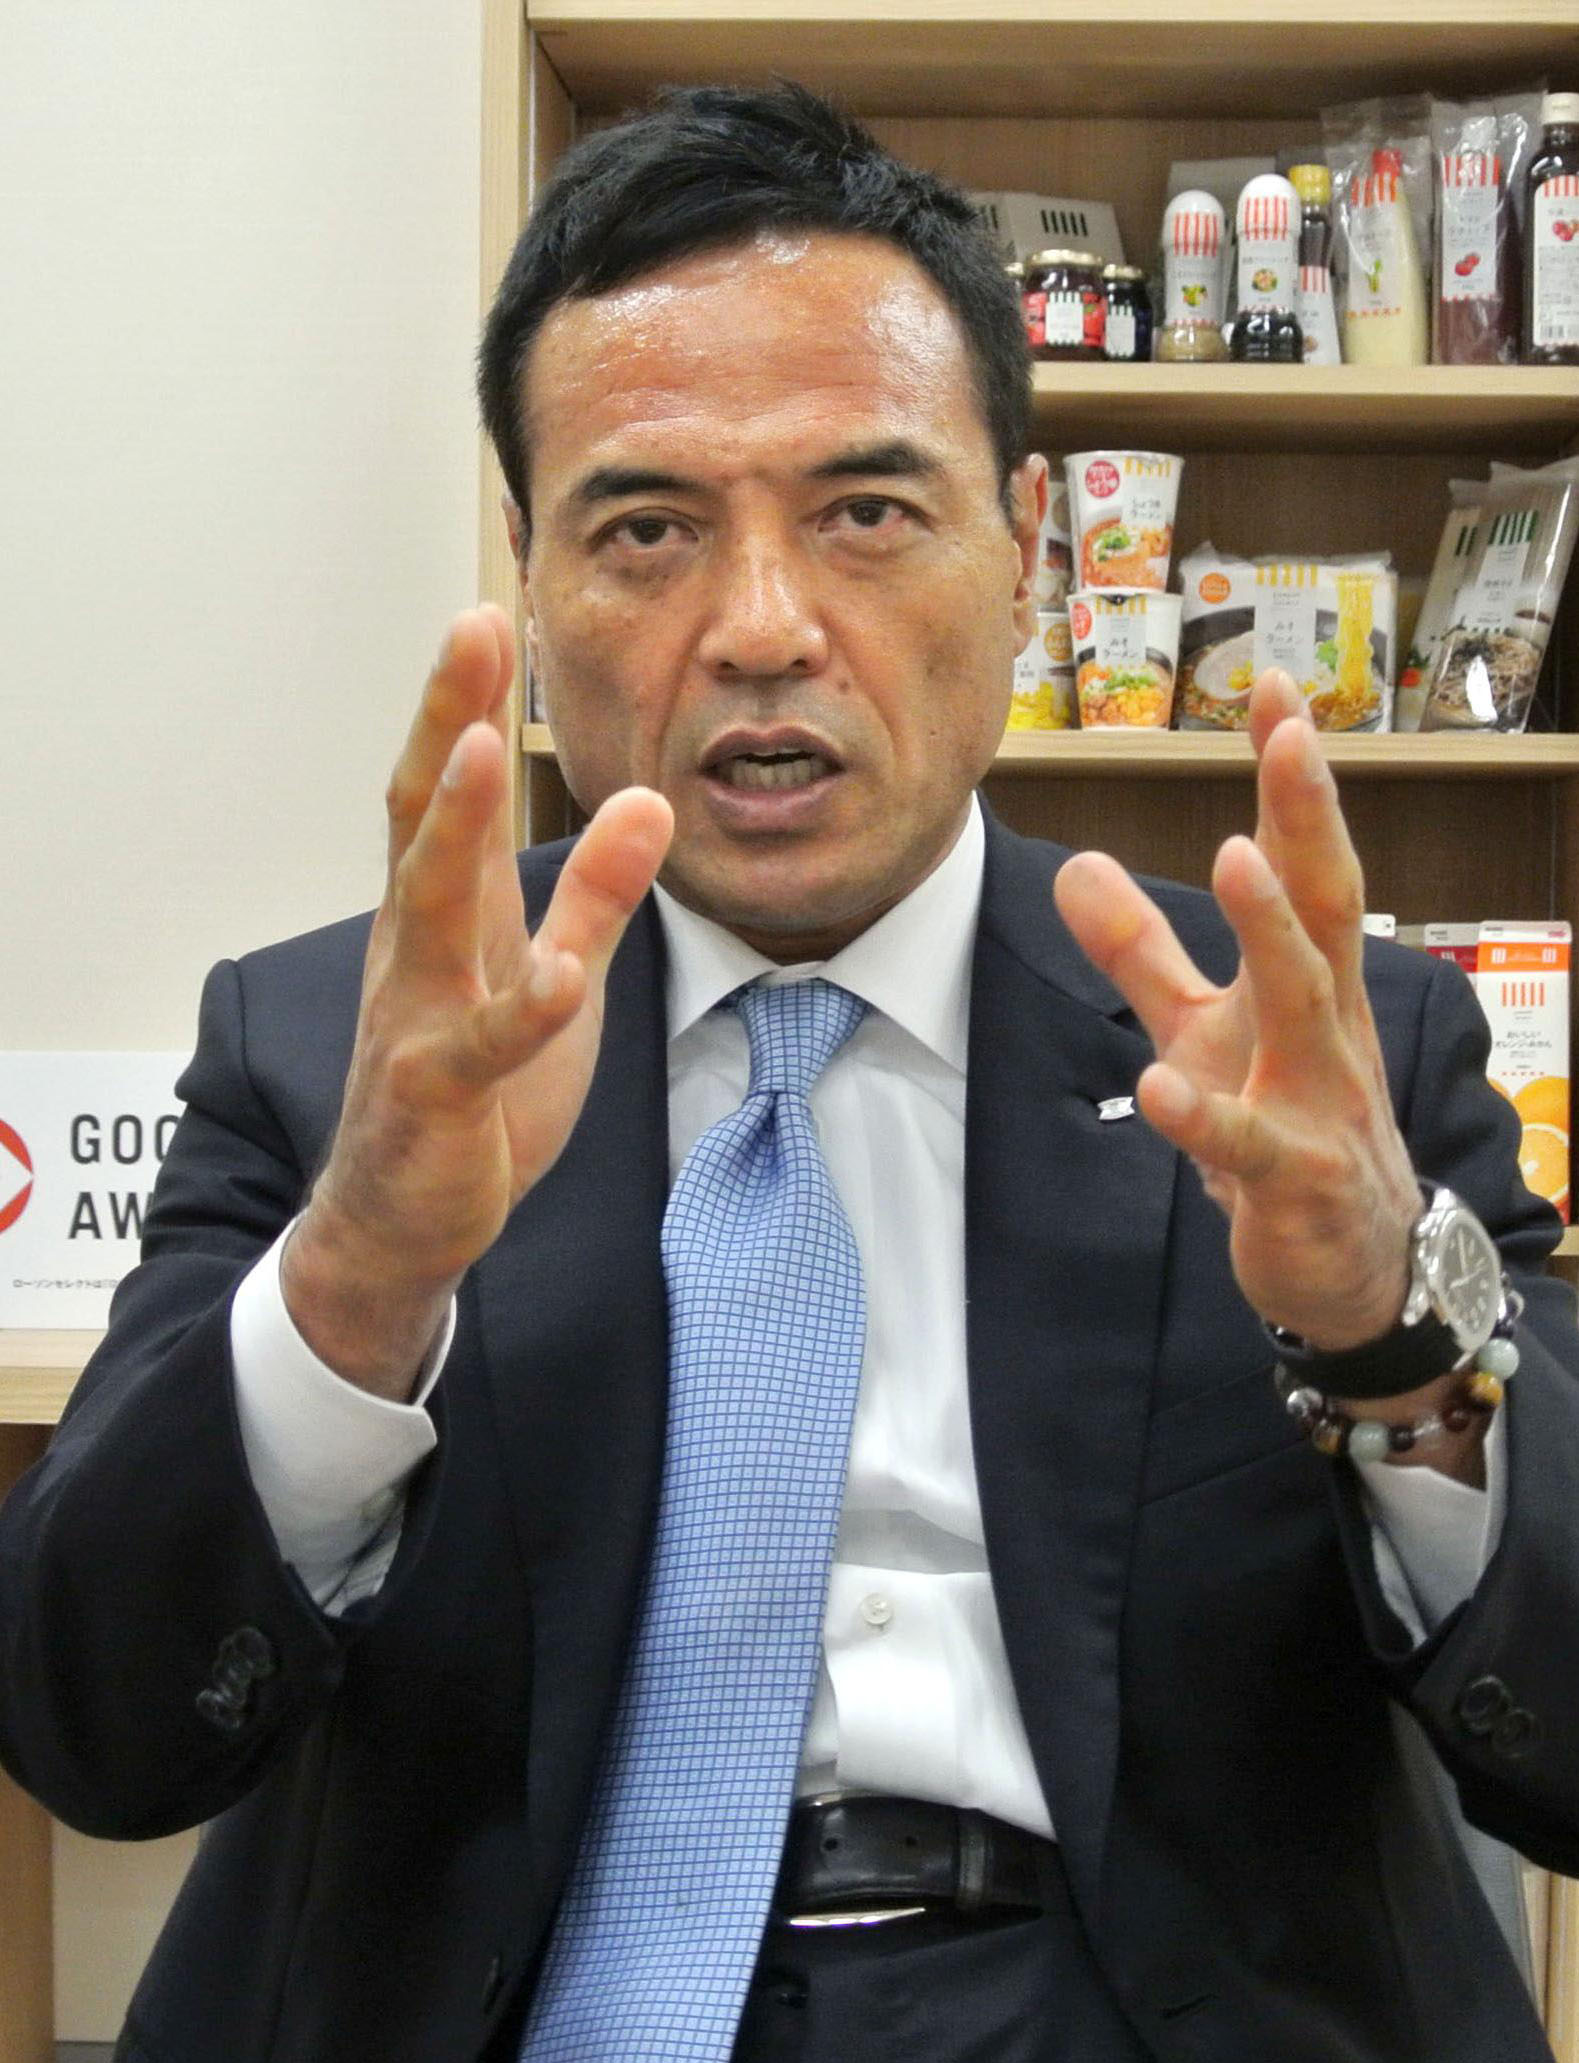 Moving and shaking: Lawson Inc. President Takeshi Niinami gesticulates during a recent interview in Tokyo. | KYODO